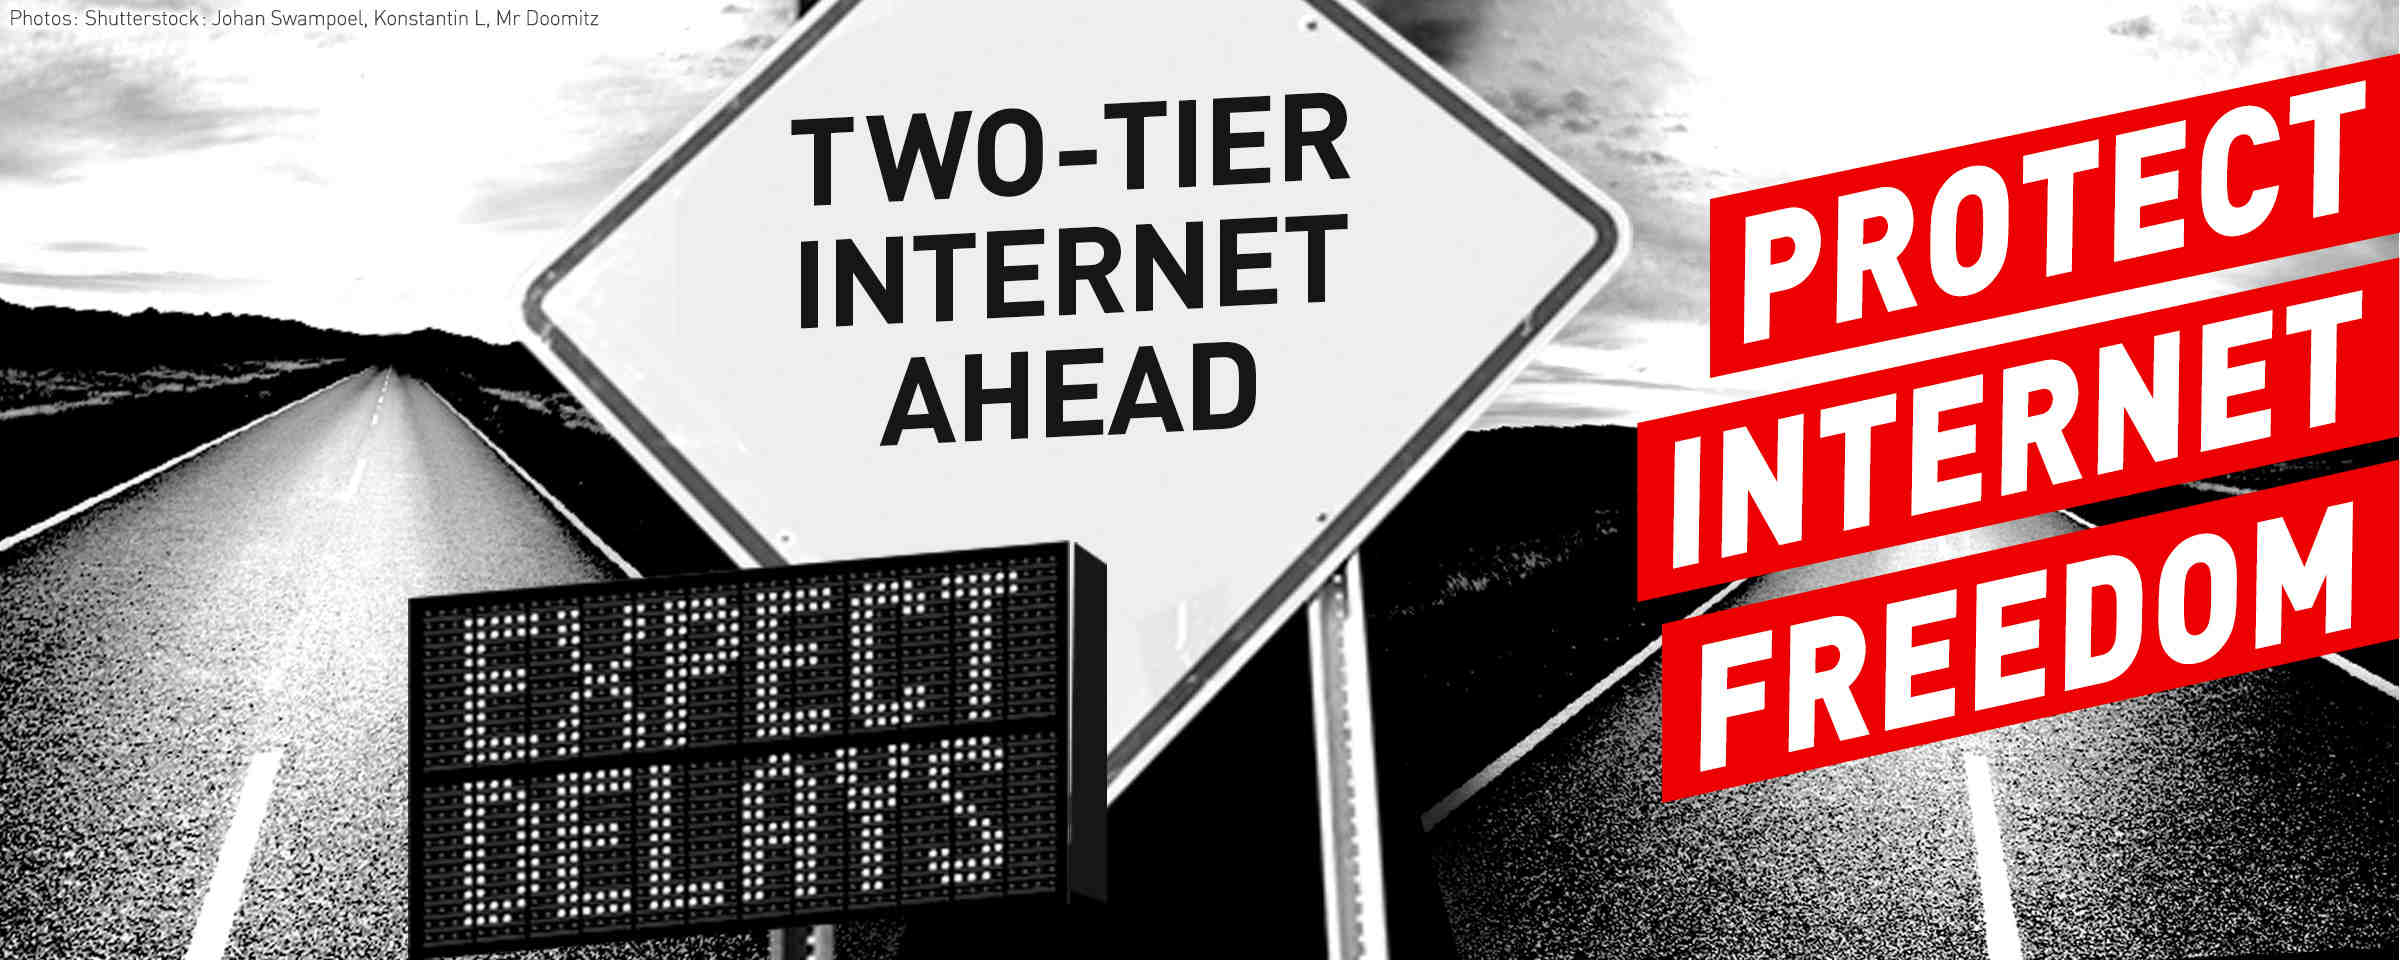 two tier internet ahead road signs